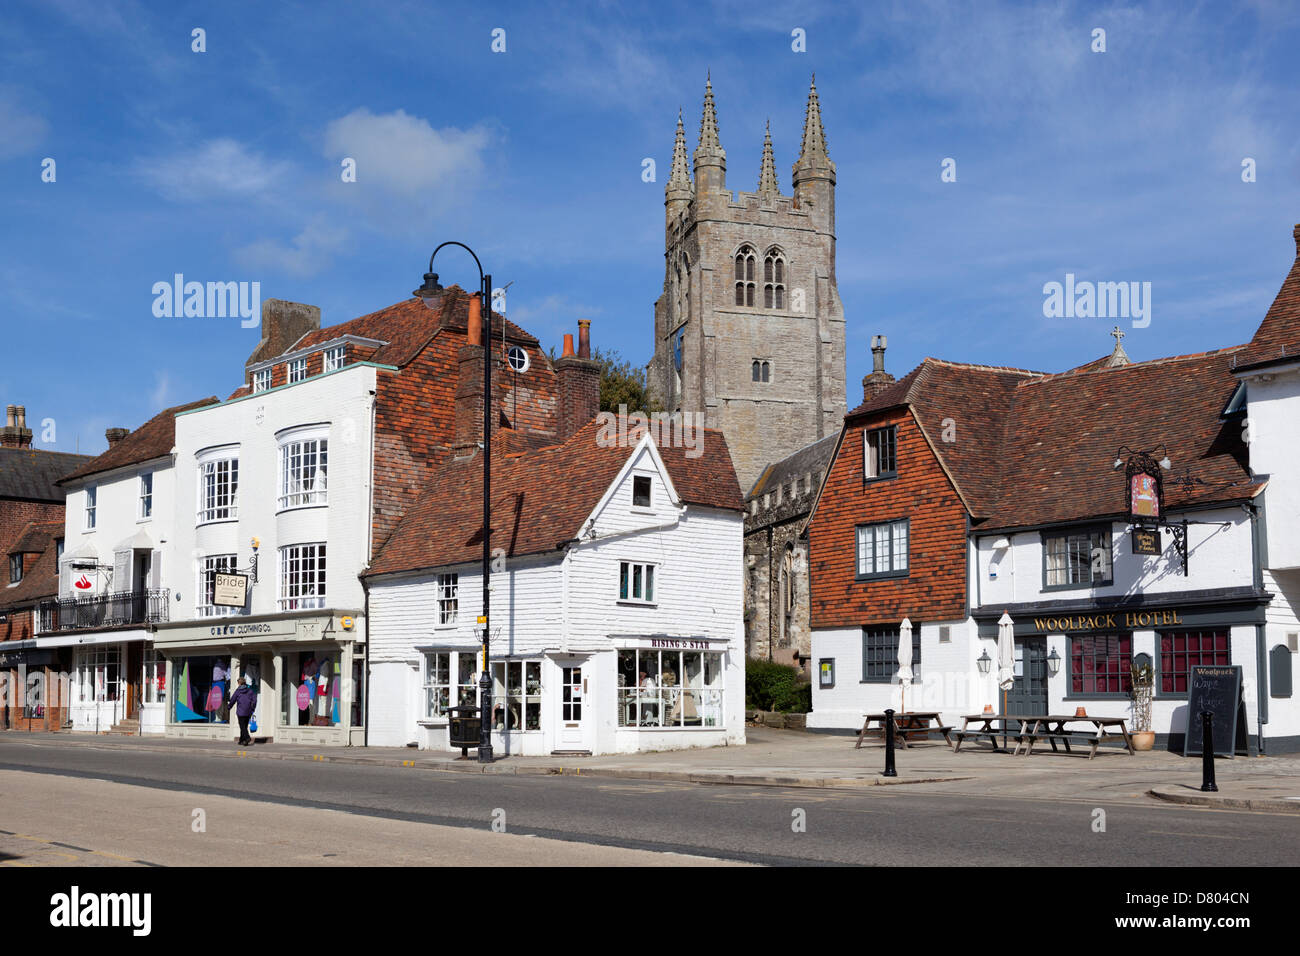 View of church and High Street with Woolpack Hotel - Stock Image